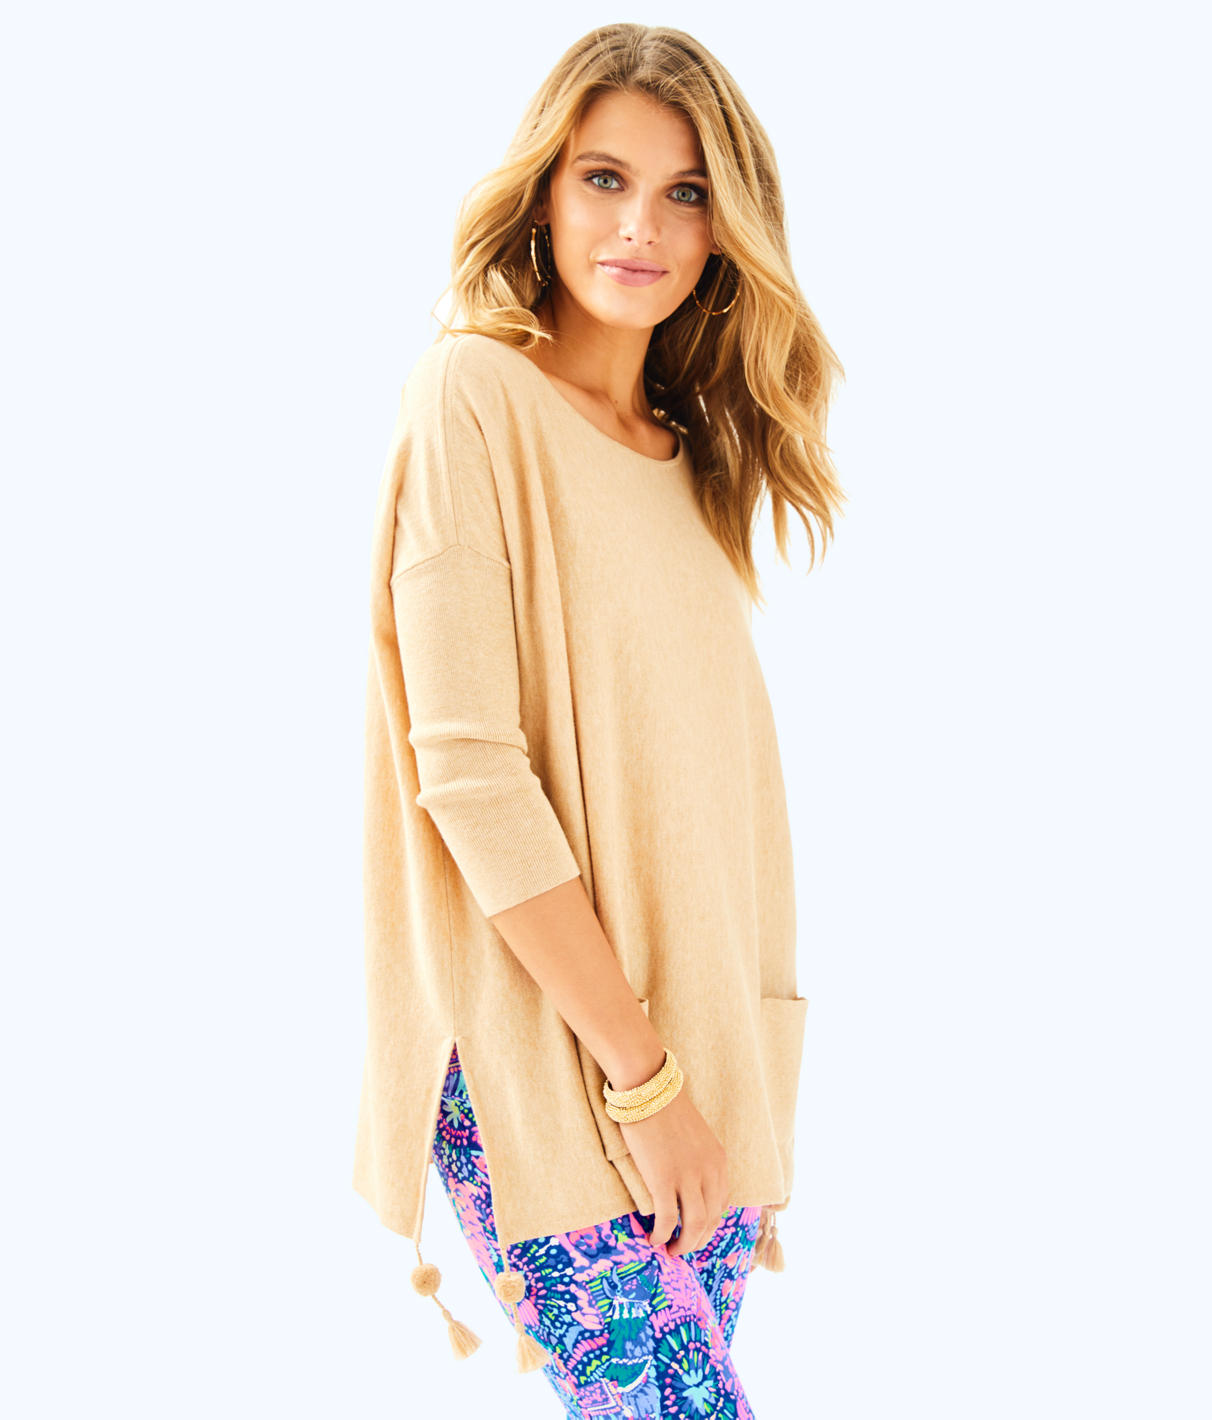 Lilly Pulitzer Lilly Pulitzer Womens Elba Sweater